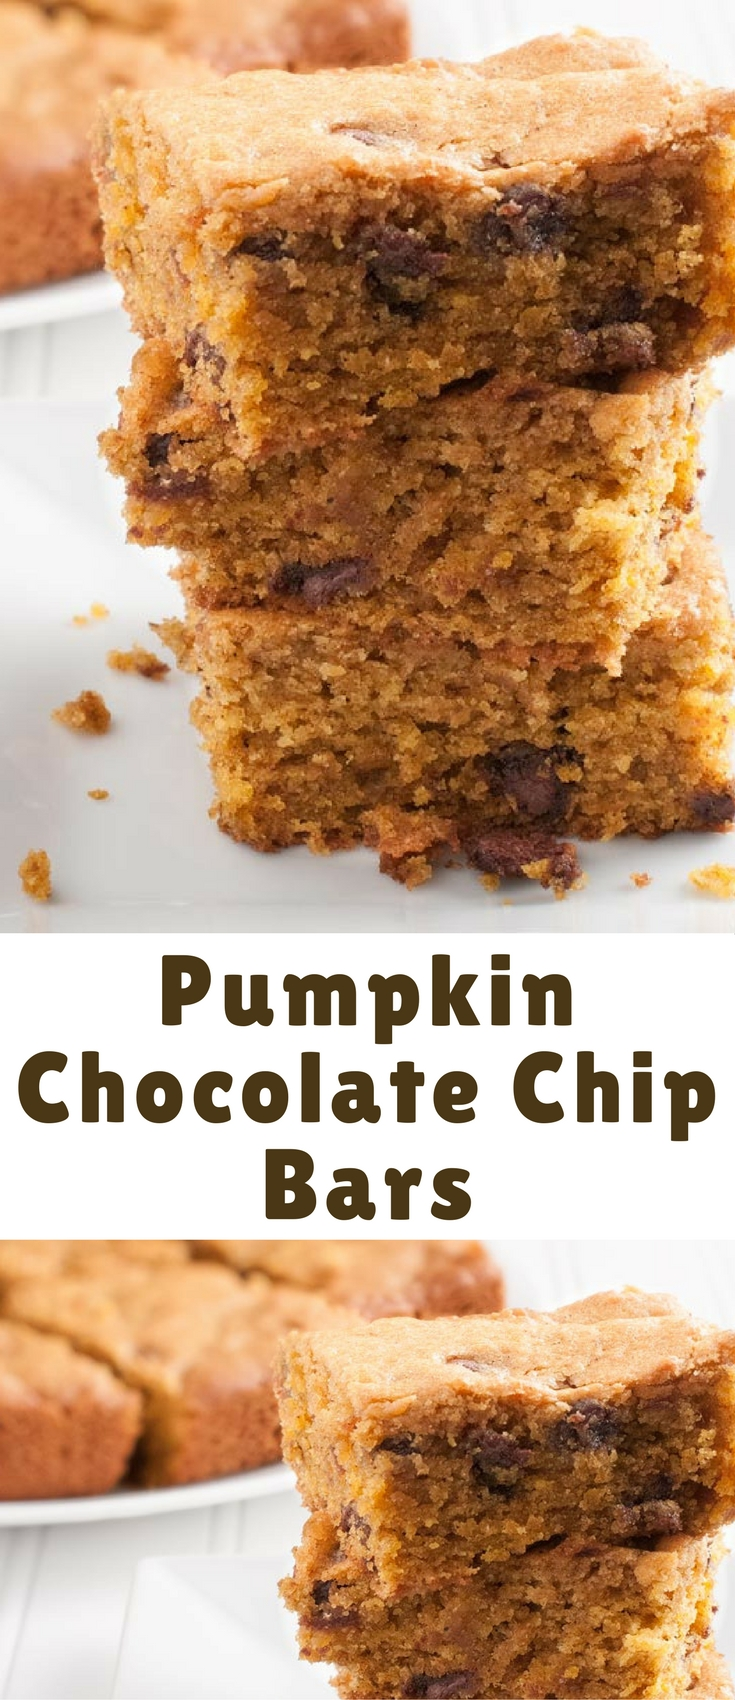 We love our desserts in our house.Today we're going to show you how to make chocolate chip cookies the easy way with a dash of pumpkin in honor of the Fall Season